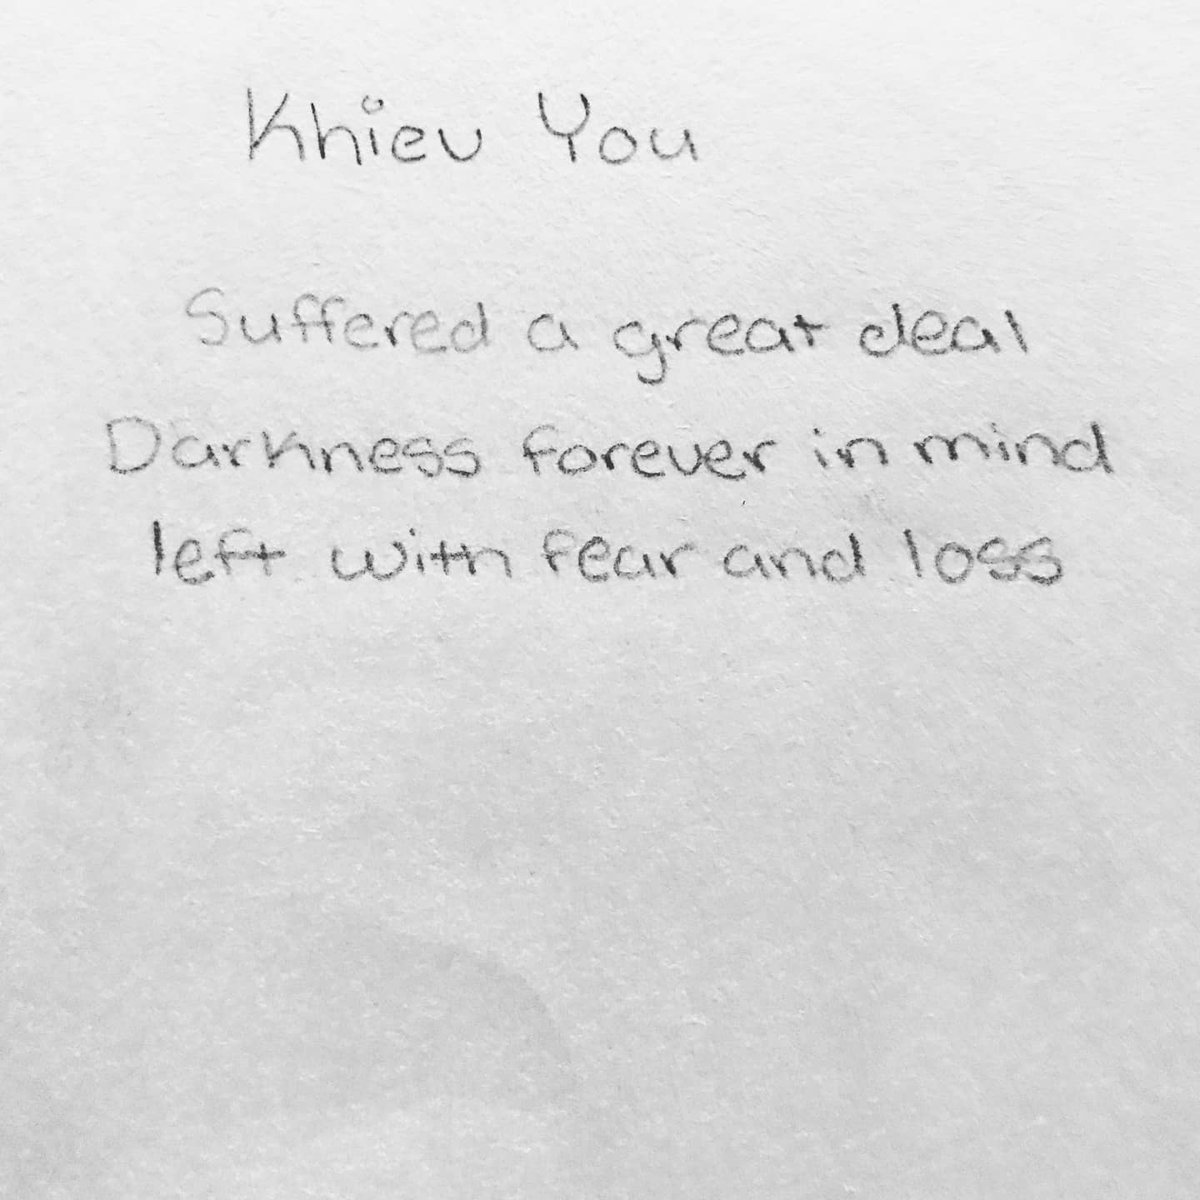 Students are submitting impressive, touching work in image & word. We will launch an online exhibition later this week, for now here is a small sample honoring survivor Khiev You of Cambodia by #VADA sophomore Matthew #bulldogsloveart #wearePUSD #PUSDProud #genocideawareness https://t.co/JXx5QuI18S